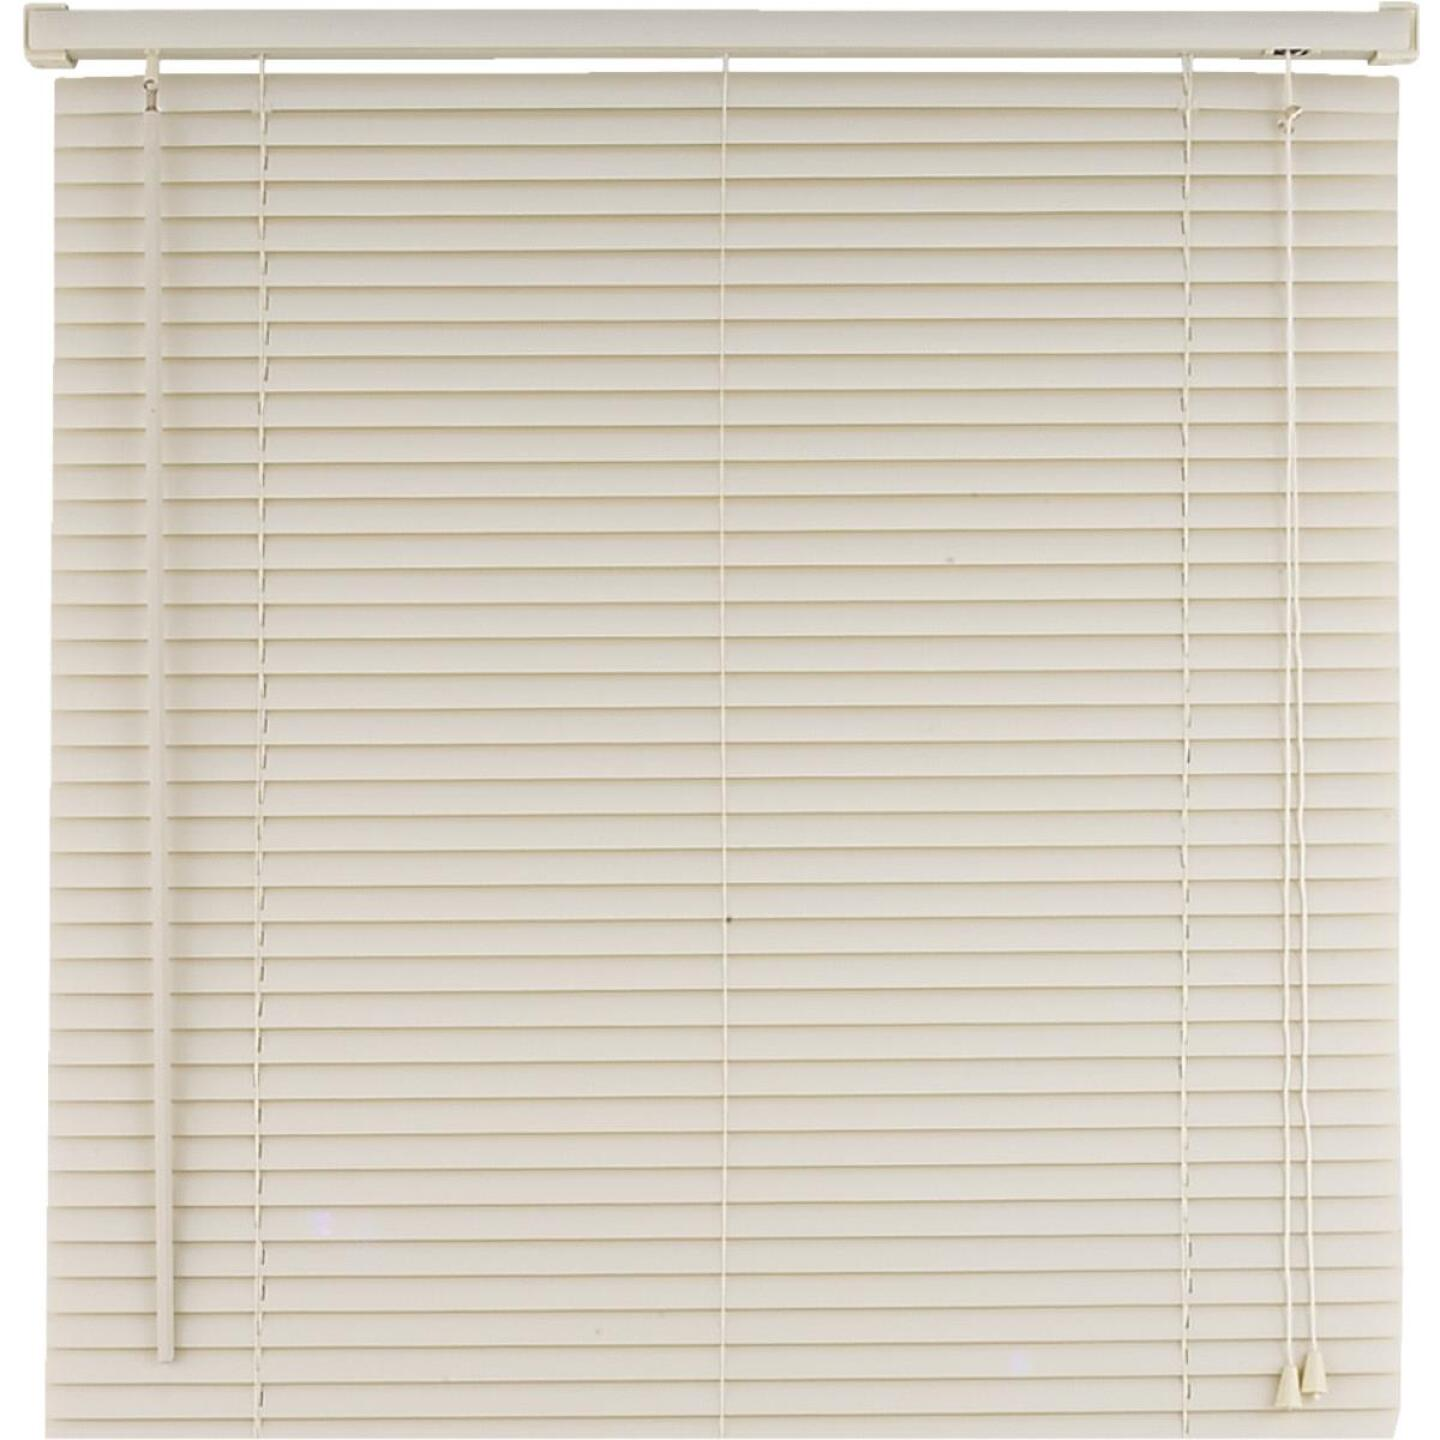 Home Impressions 35 In. x 64 In. Alabaster Vinyl Light Filtering Corded Mini-Blinds Image 1